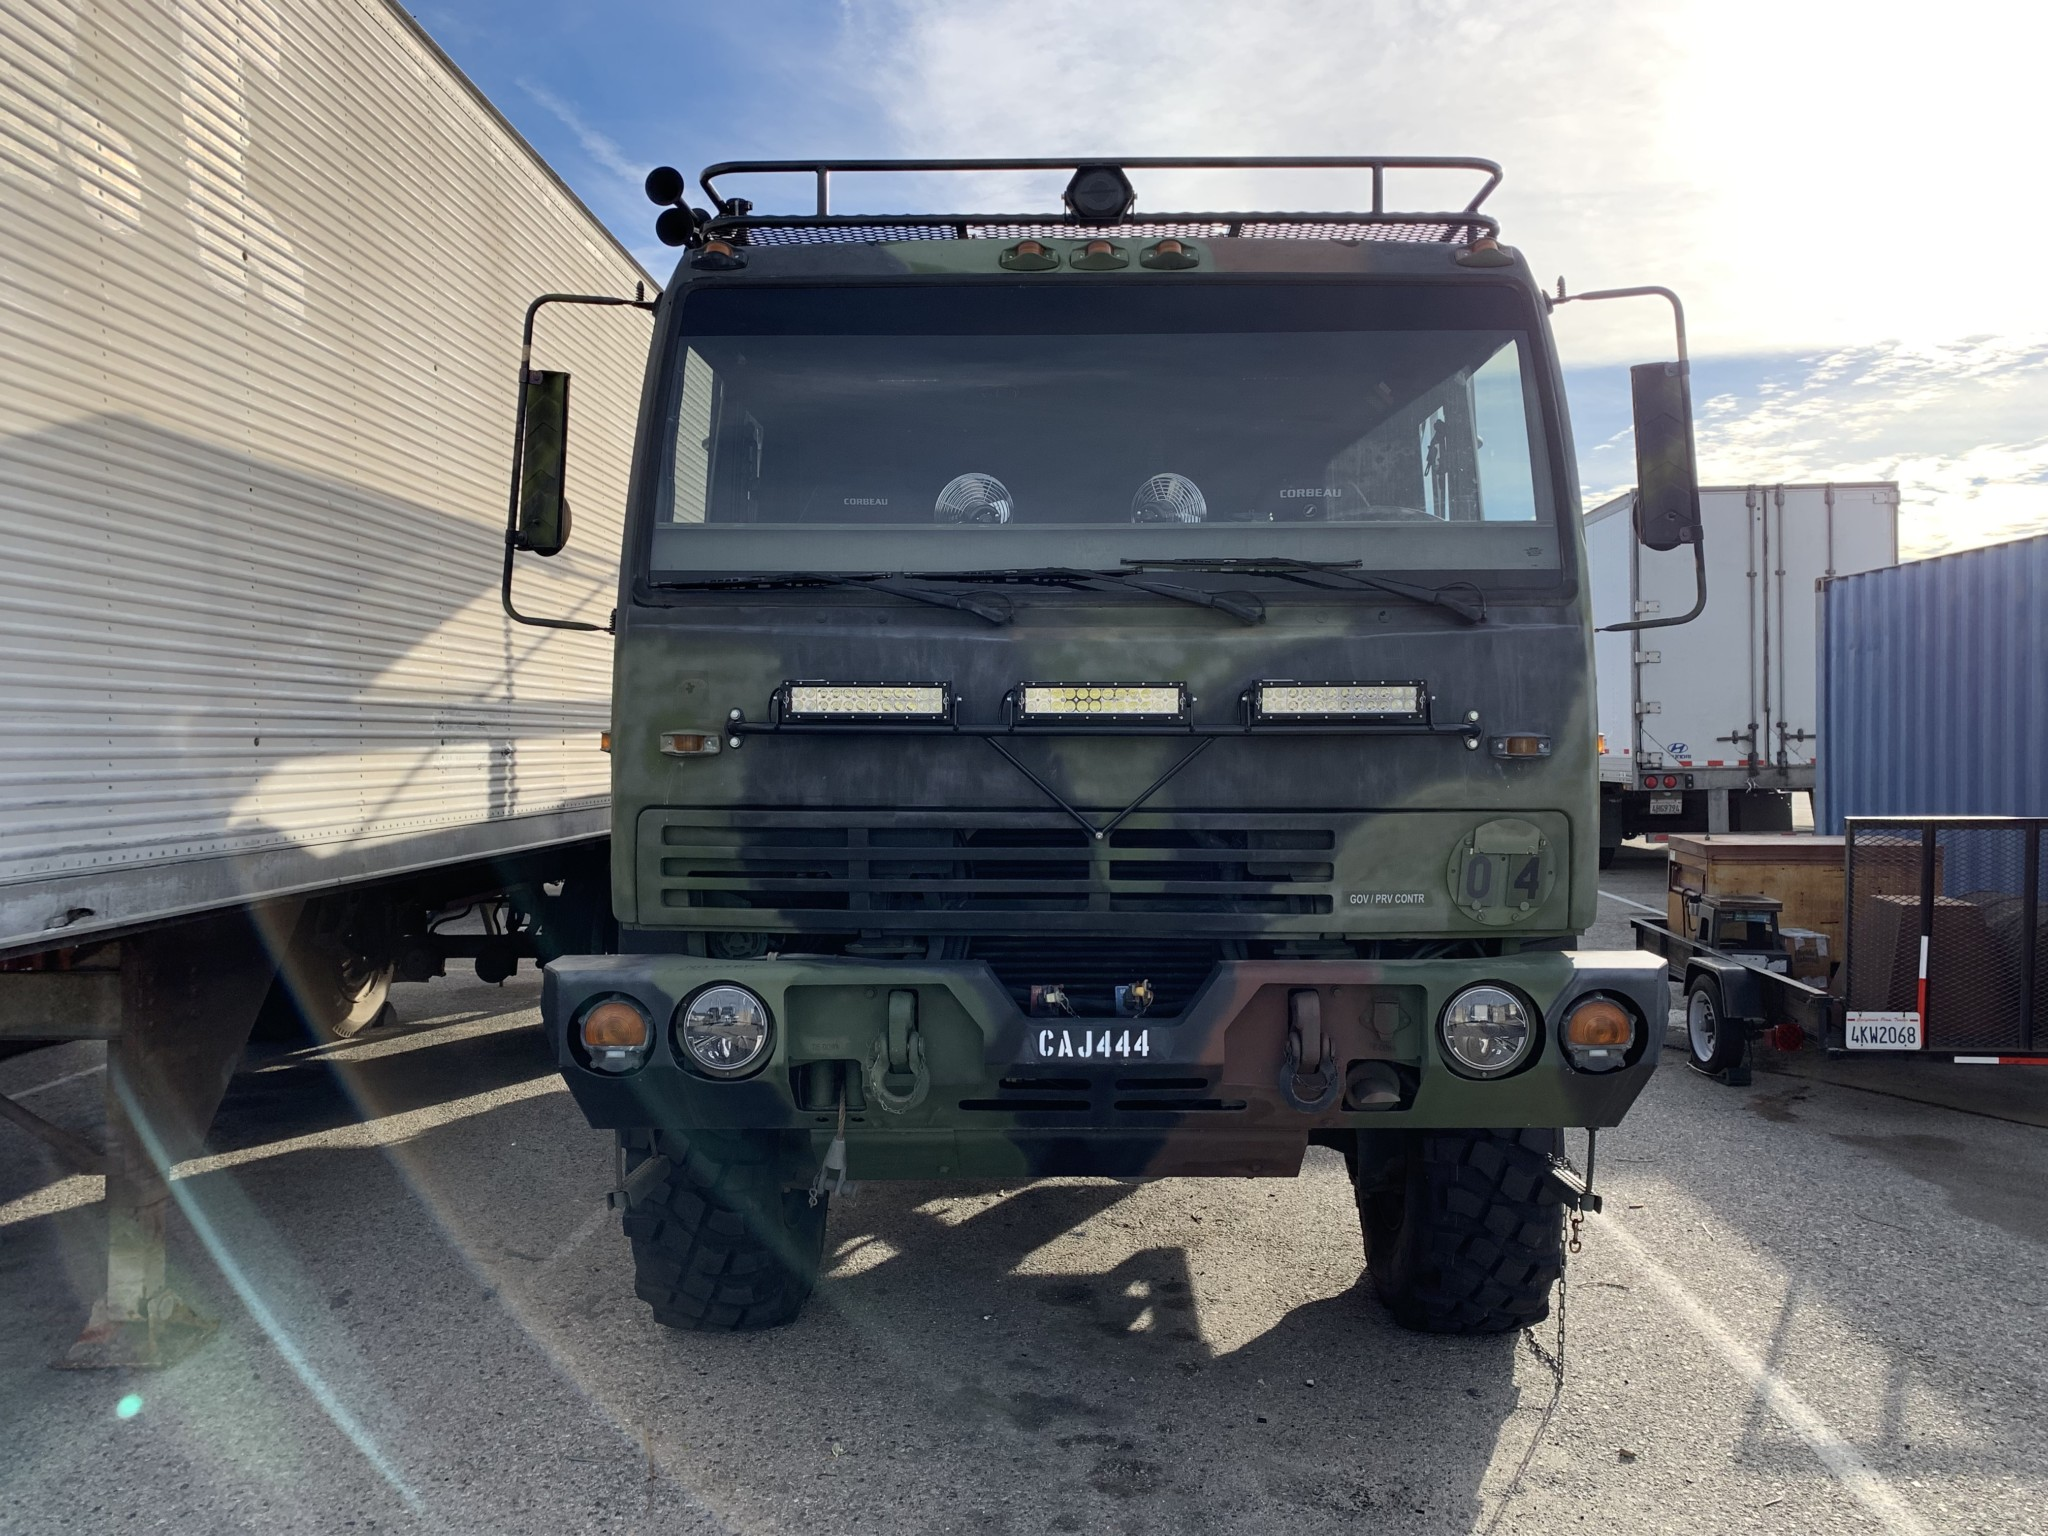 A military LMTV could make the perfect overlanding RV